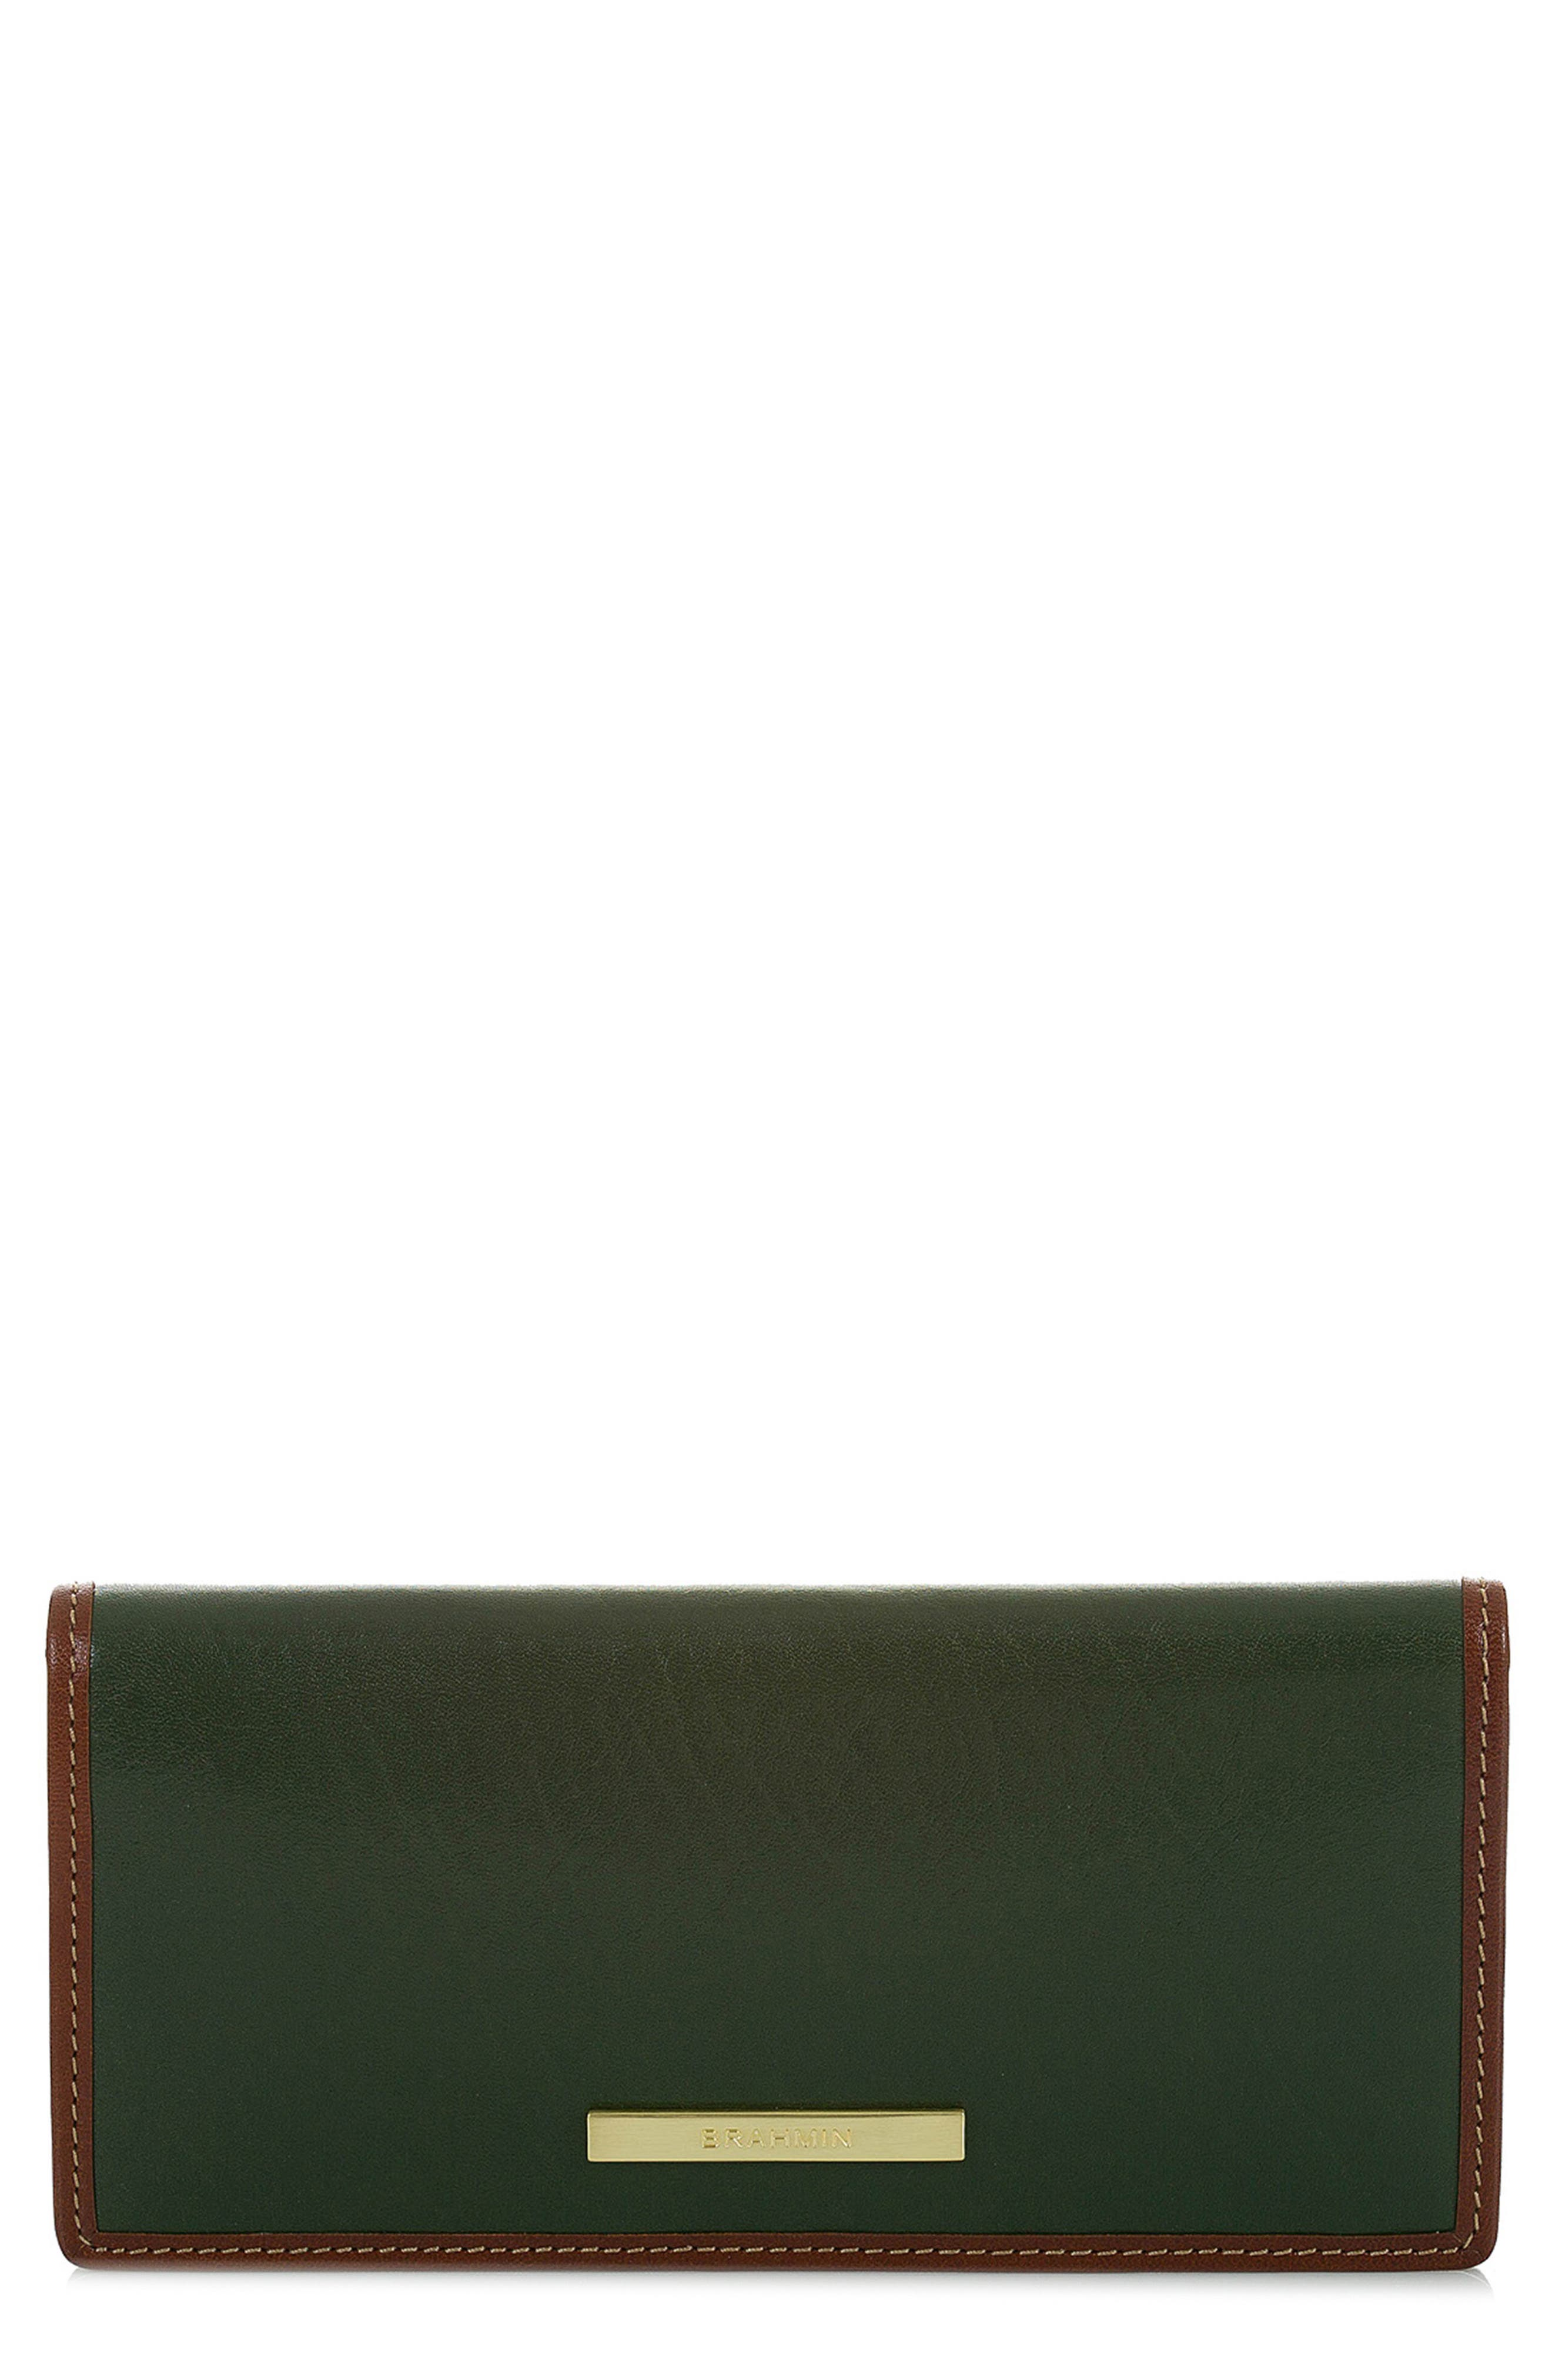 Ady Leather Wallet,                             Main thumbnail 1, color,                             HUNTER